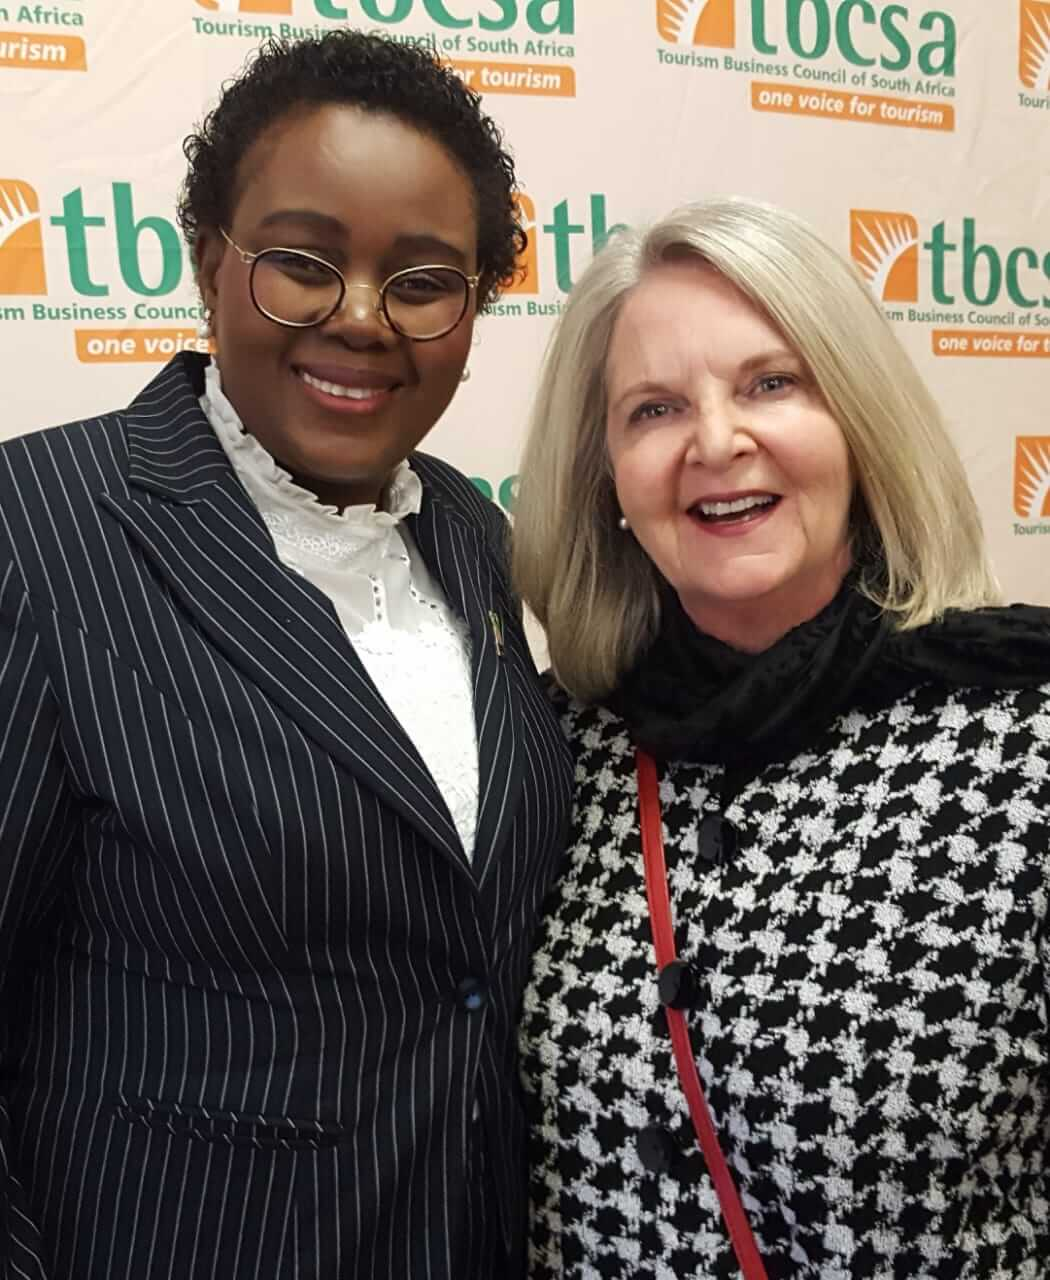 South Africa Tourism Minister: Marking a first for Wine and Food Conference